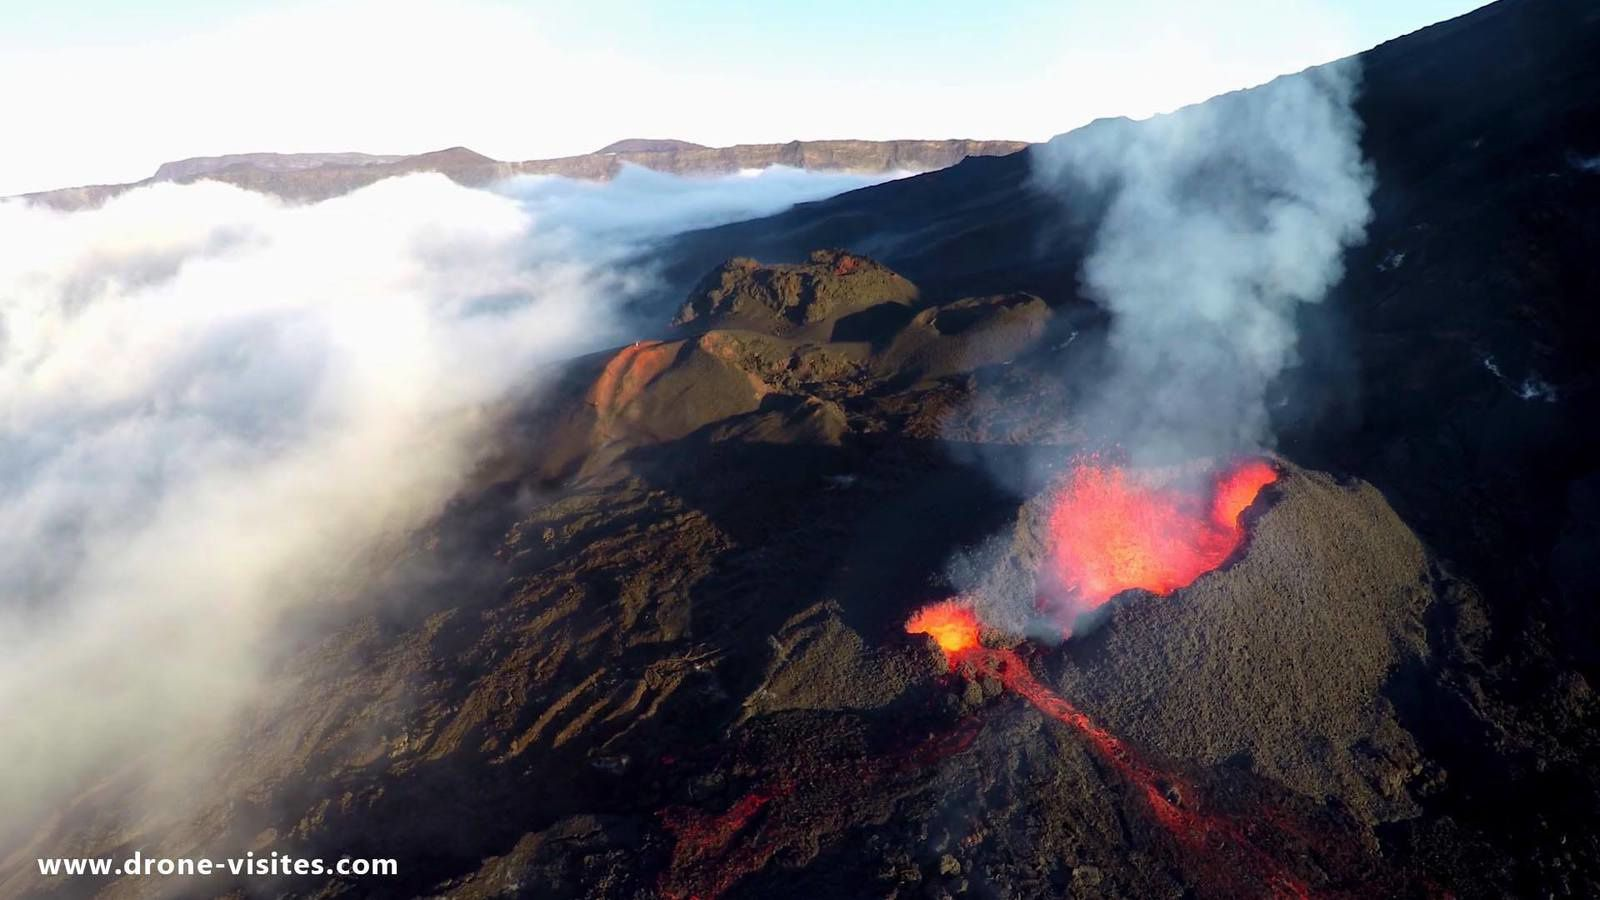 Cinder cones on Piton de la Fournaise (photo: Drone Visites)